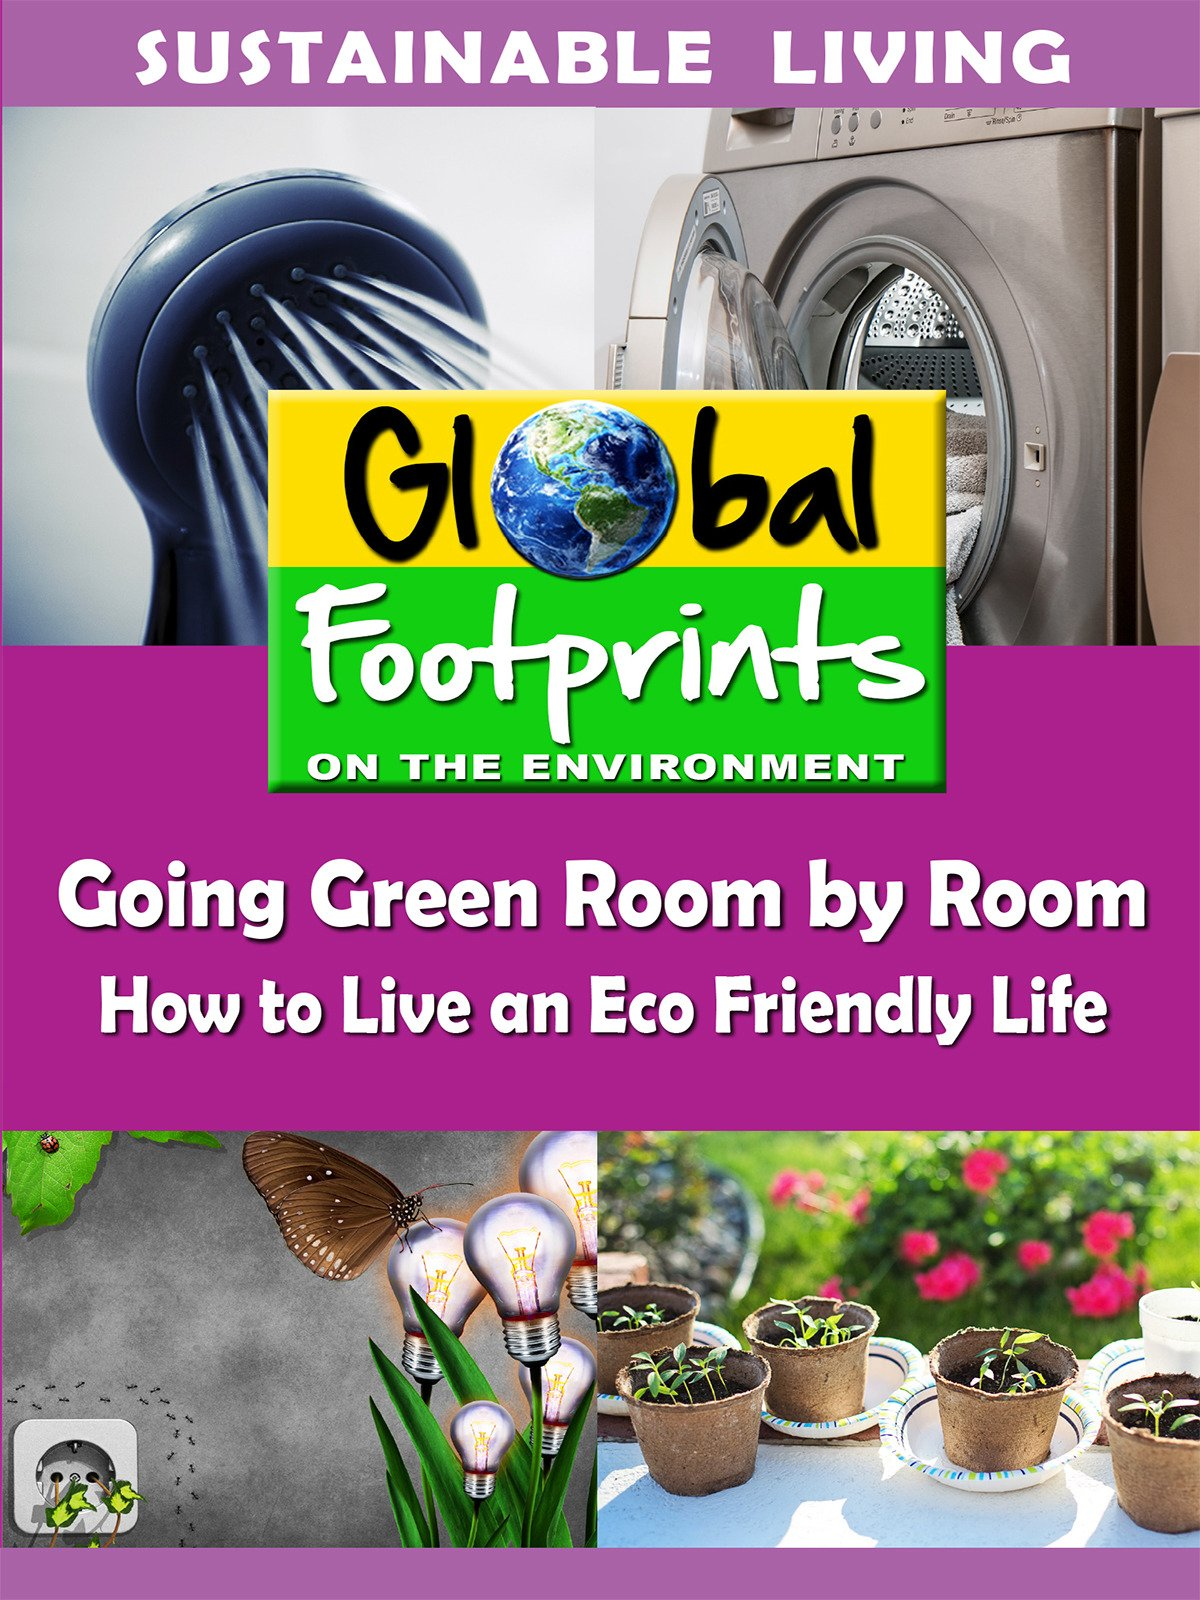 Global Footprints-Going Green Room by Room - How to Live an Eco Friendly Life